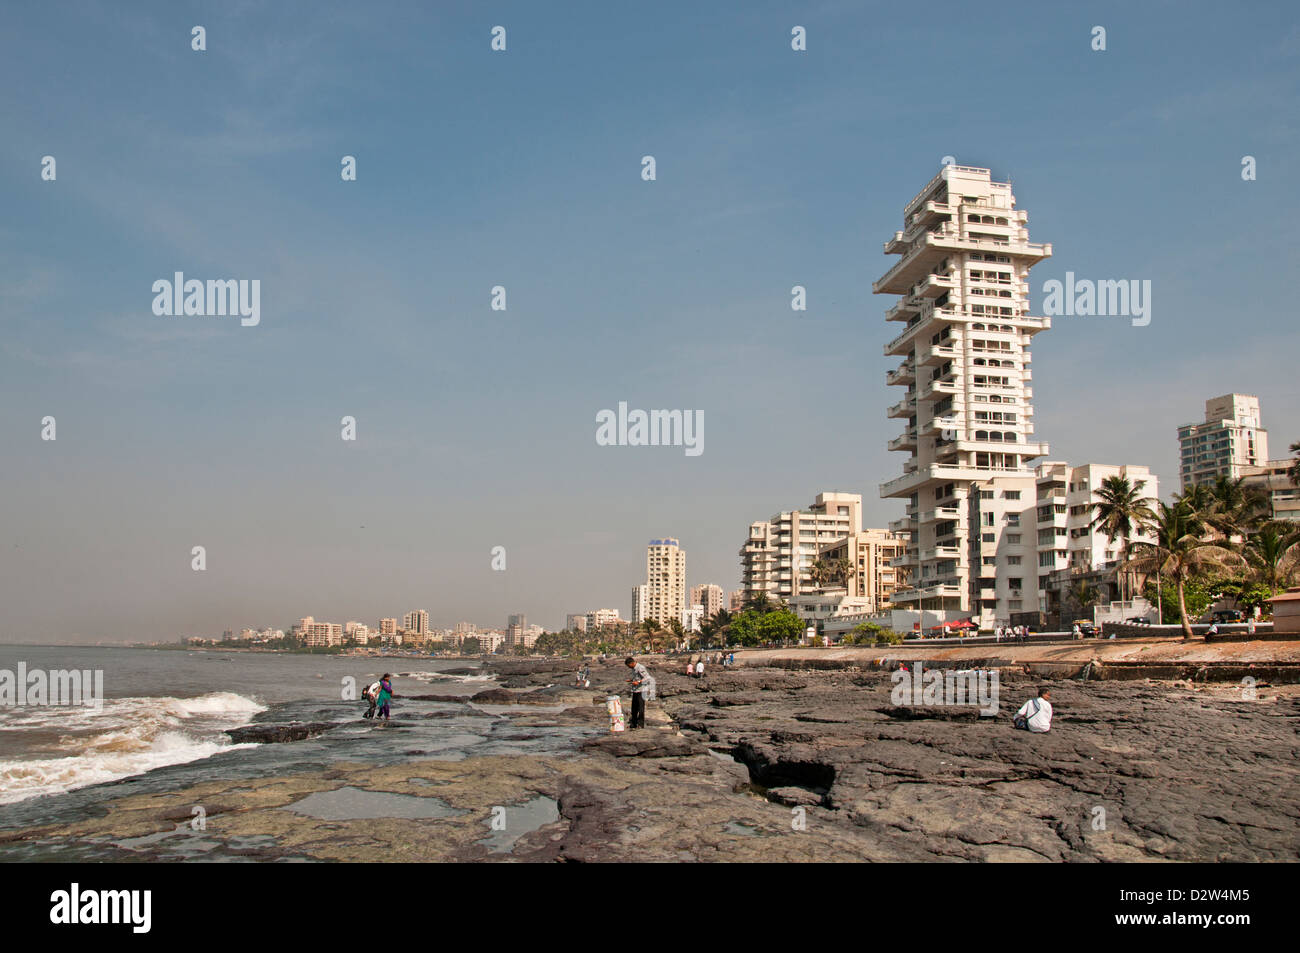 Le Bandra Beach road Mumbai ( Bombay ) Inde Architecture moderne Banque D'Images